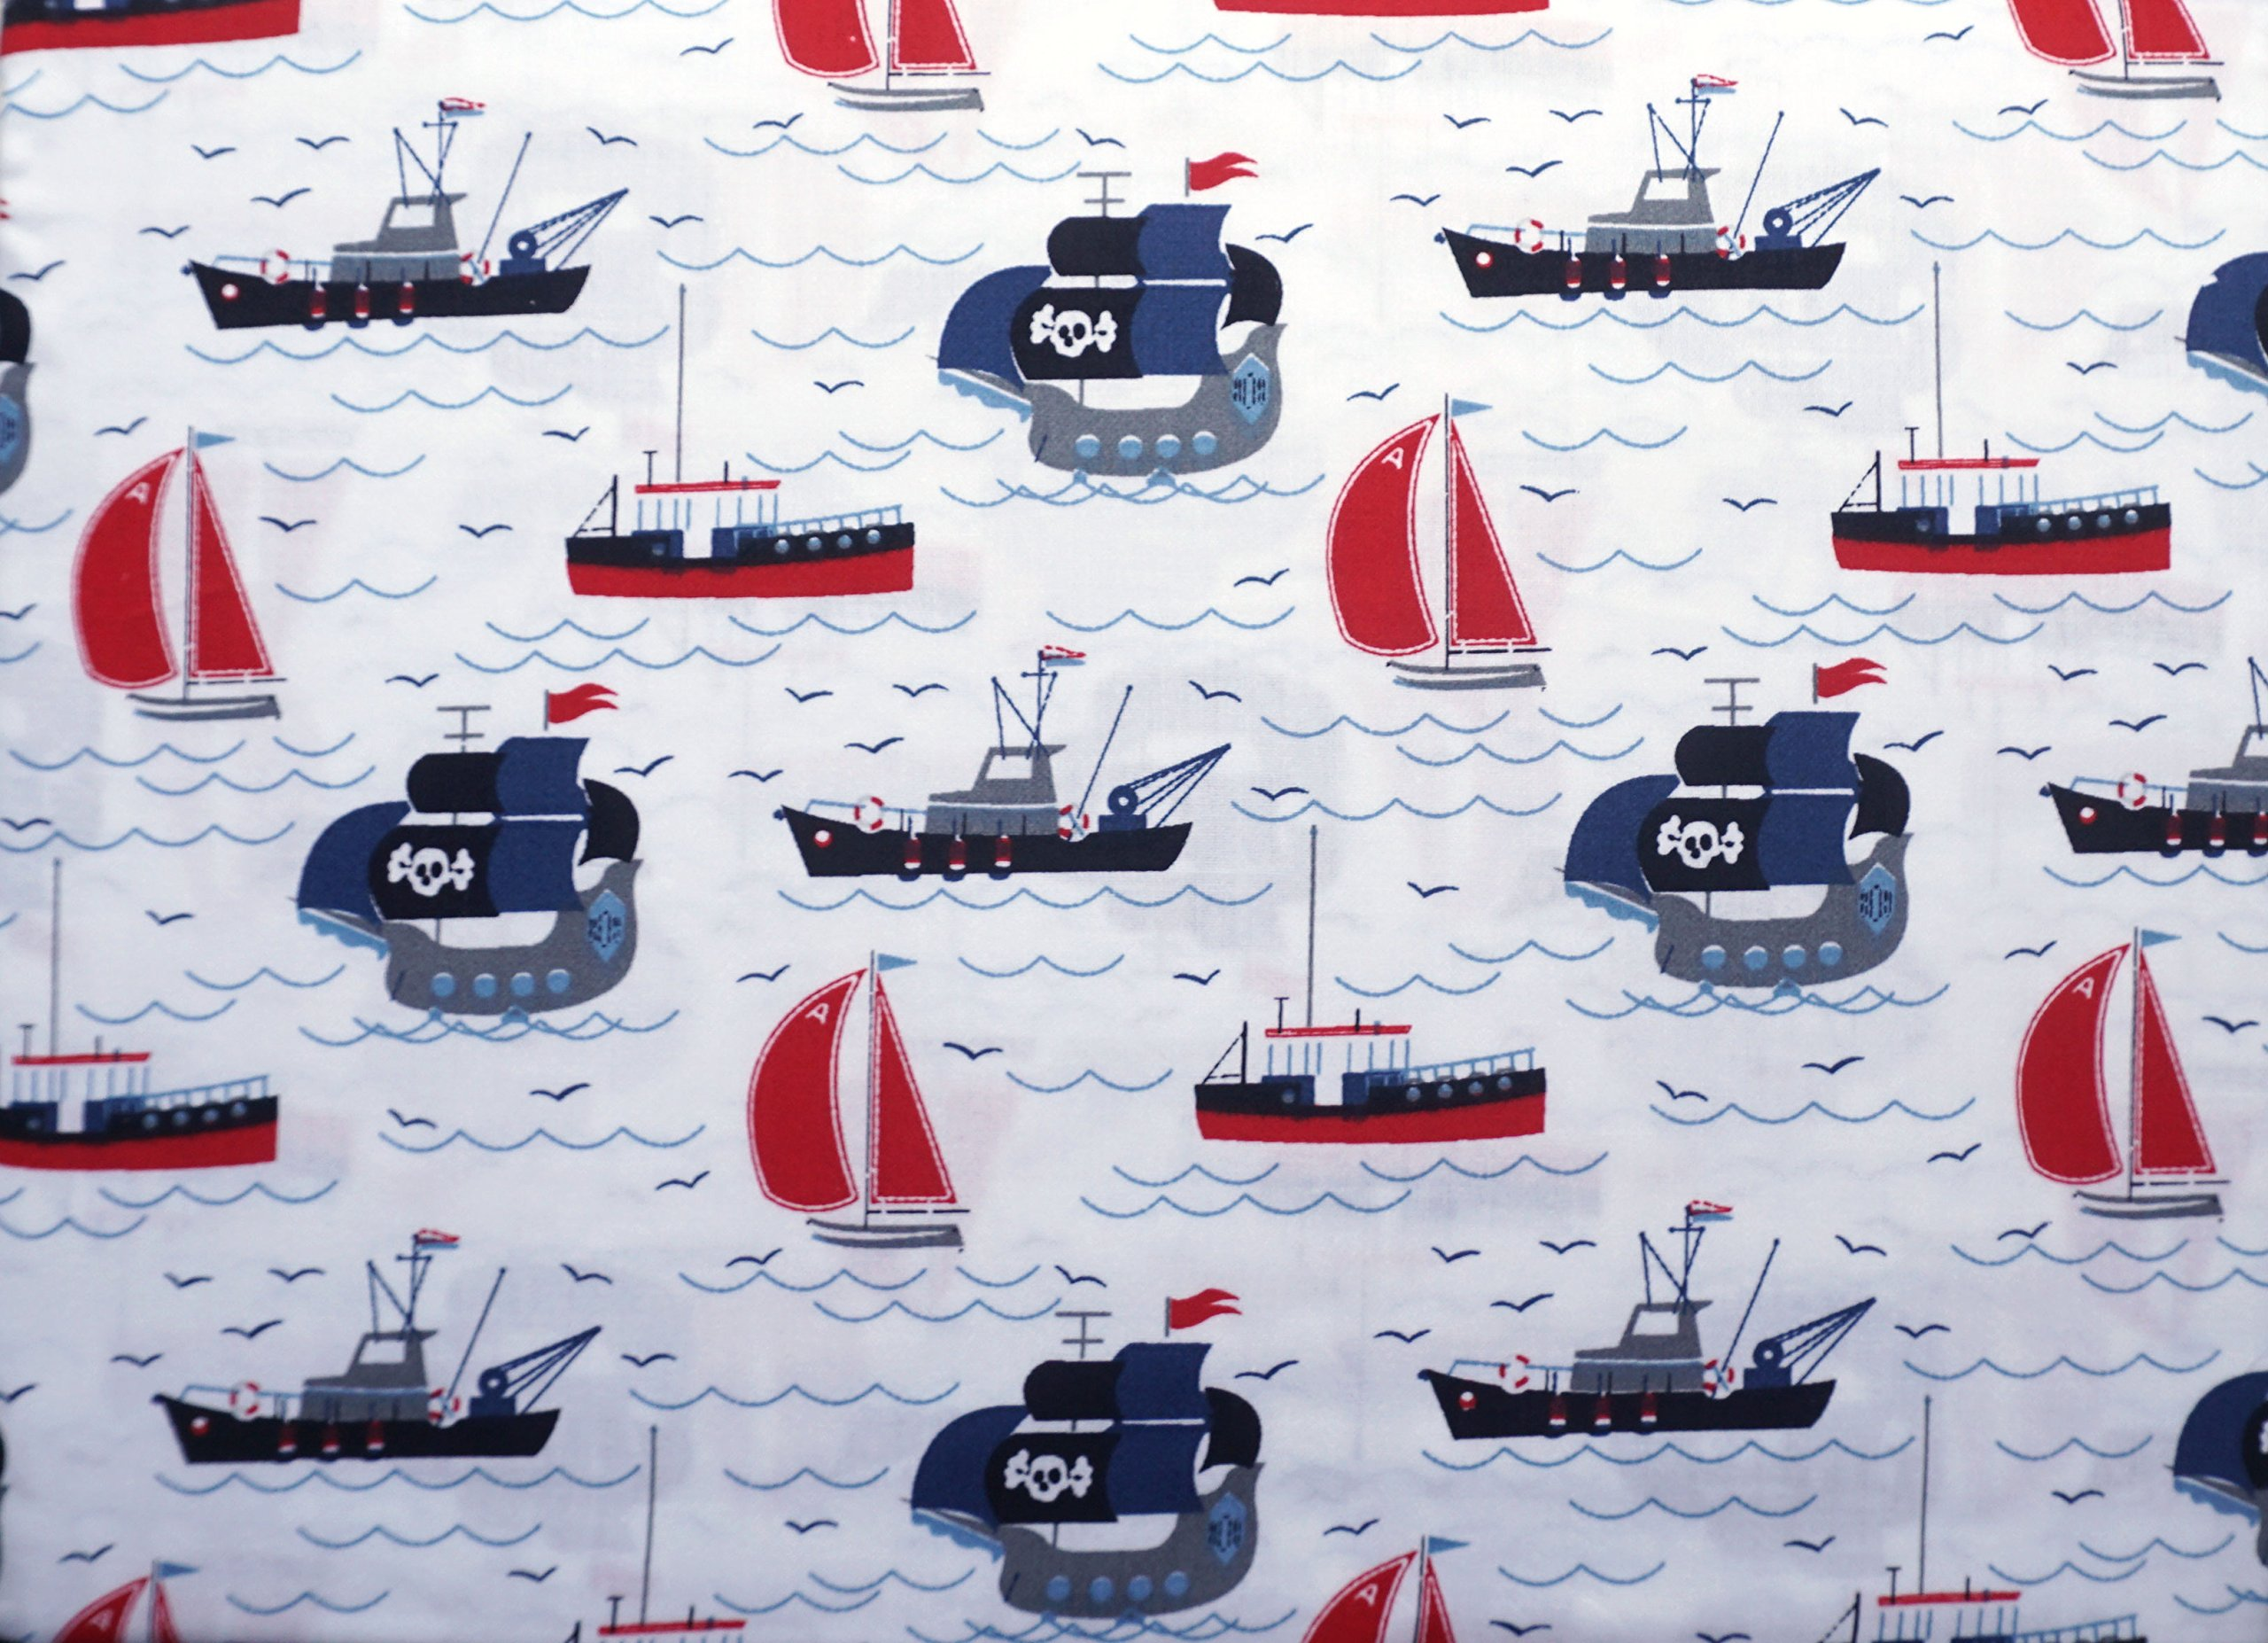 Authentic Kids 3 Piece Twin Sheet Set Red Blue Gray Black Pirate Ships Tug Boats Sail Boats Ocean